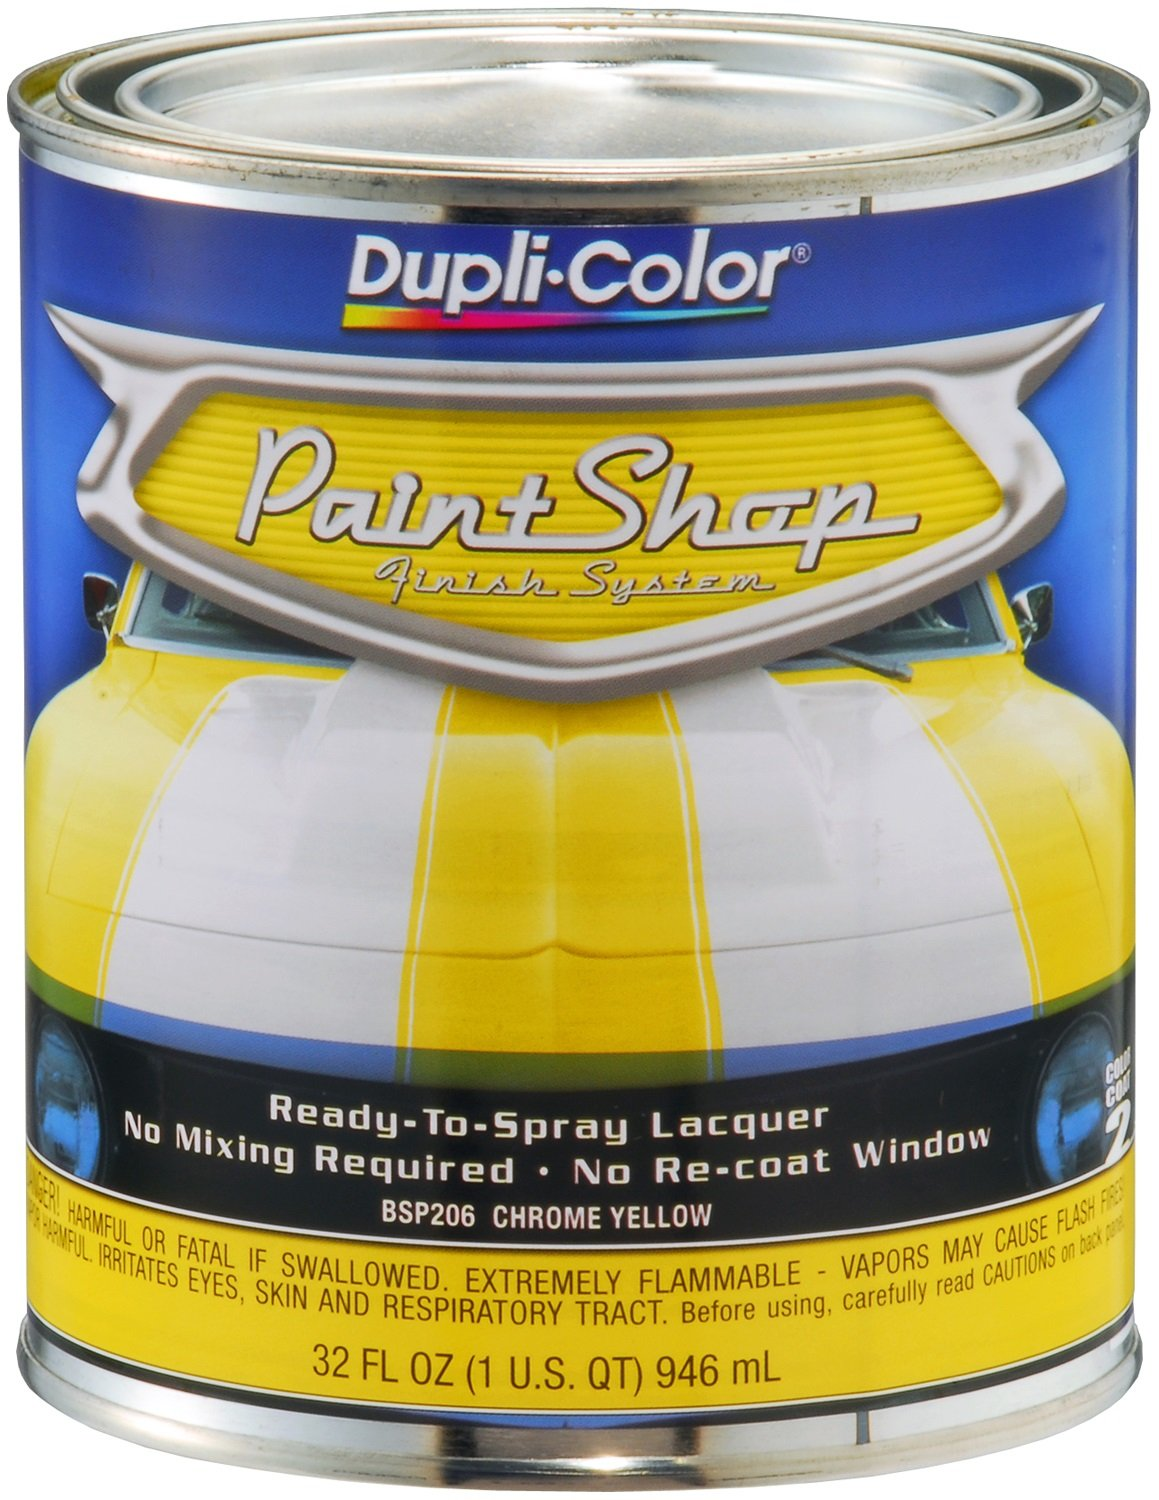 Dupli Color Bsp206 Chrome Yellow Paint Shop Finish System 32 Oz Ebay